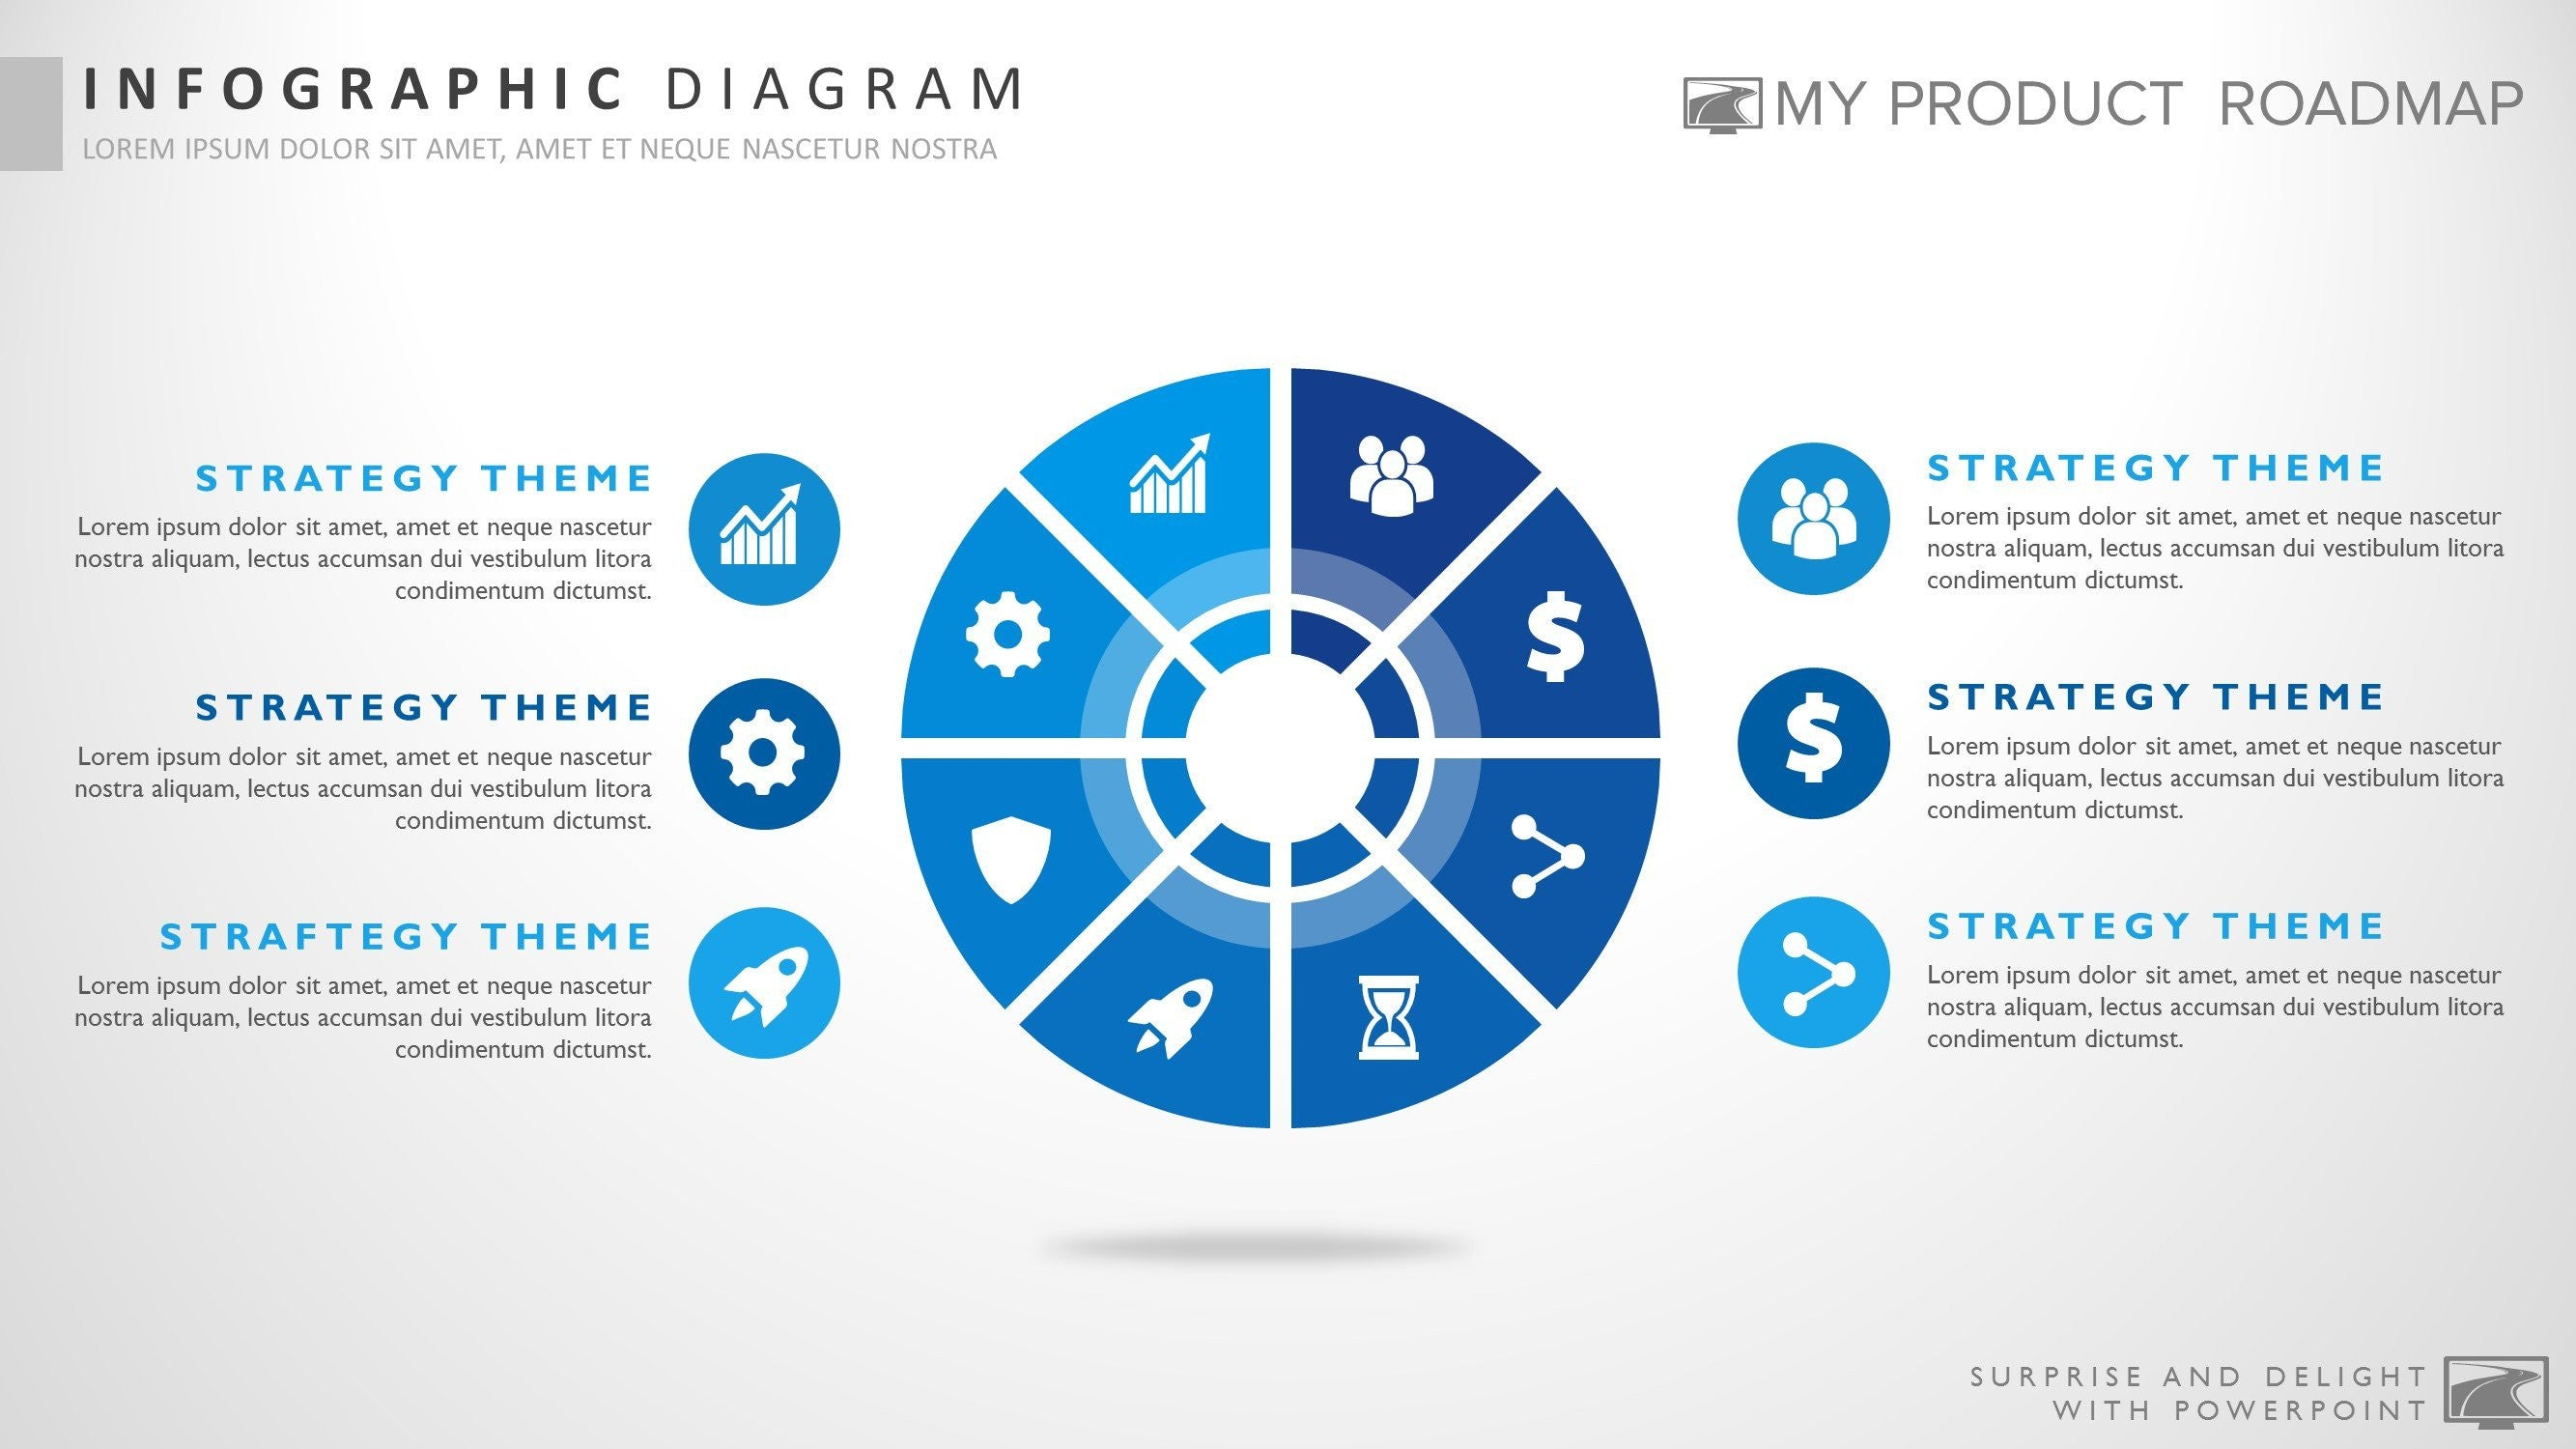 Eight stage infographic powerpoint strategy infographic slide design ccuart Images